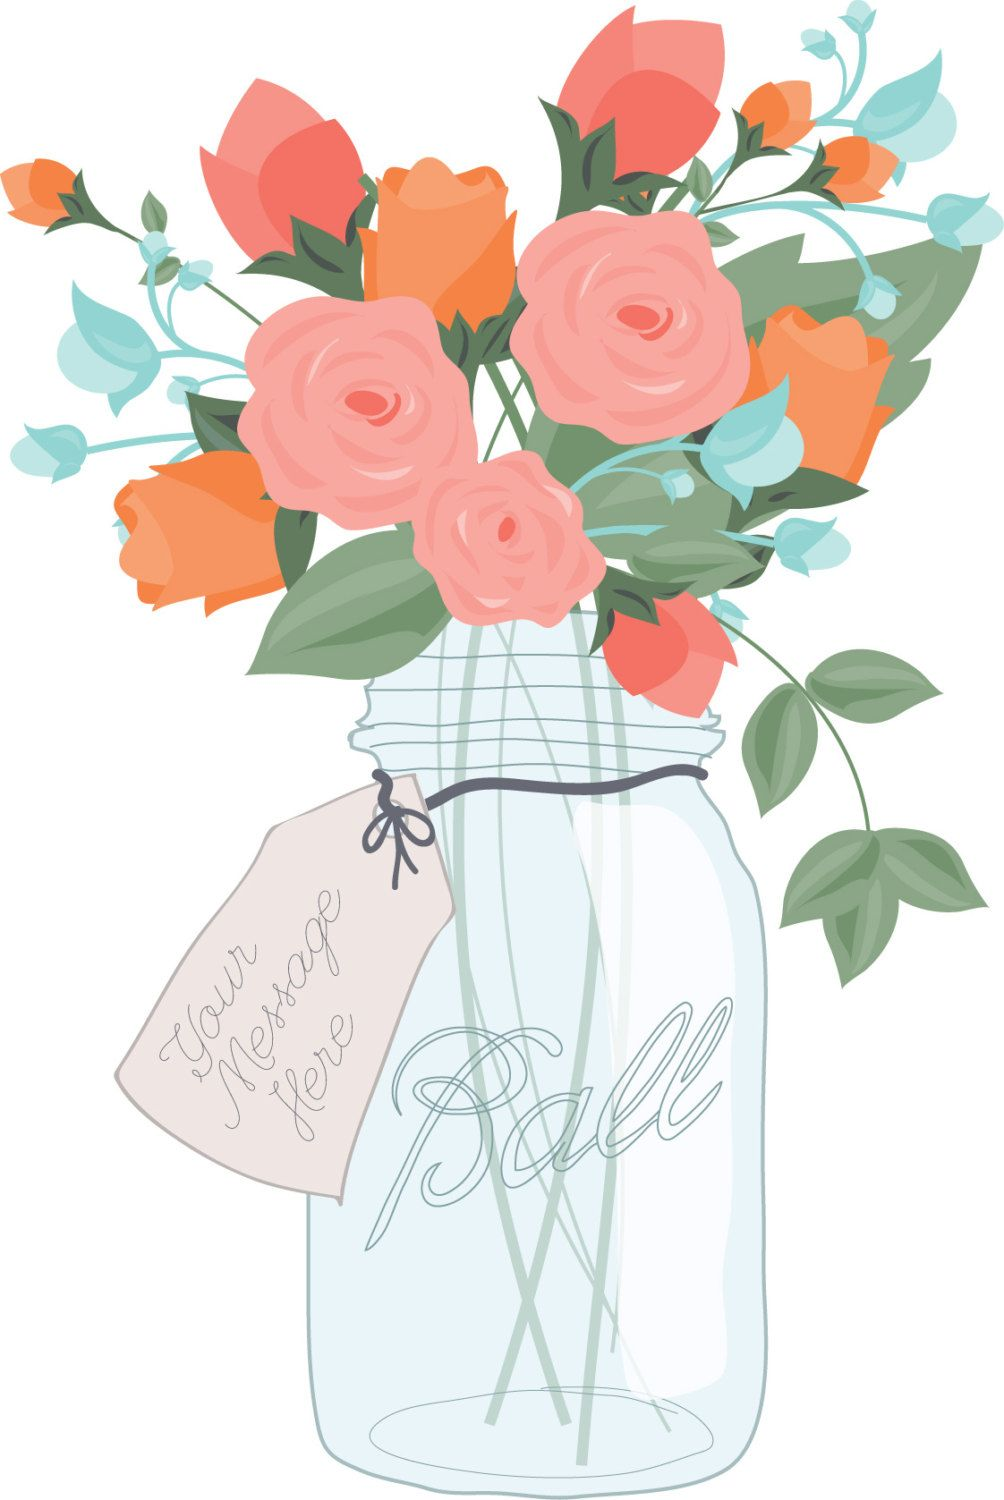 Of flowers in vase. Bouquet clipart 4 flower